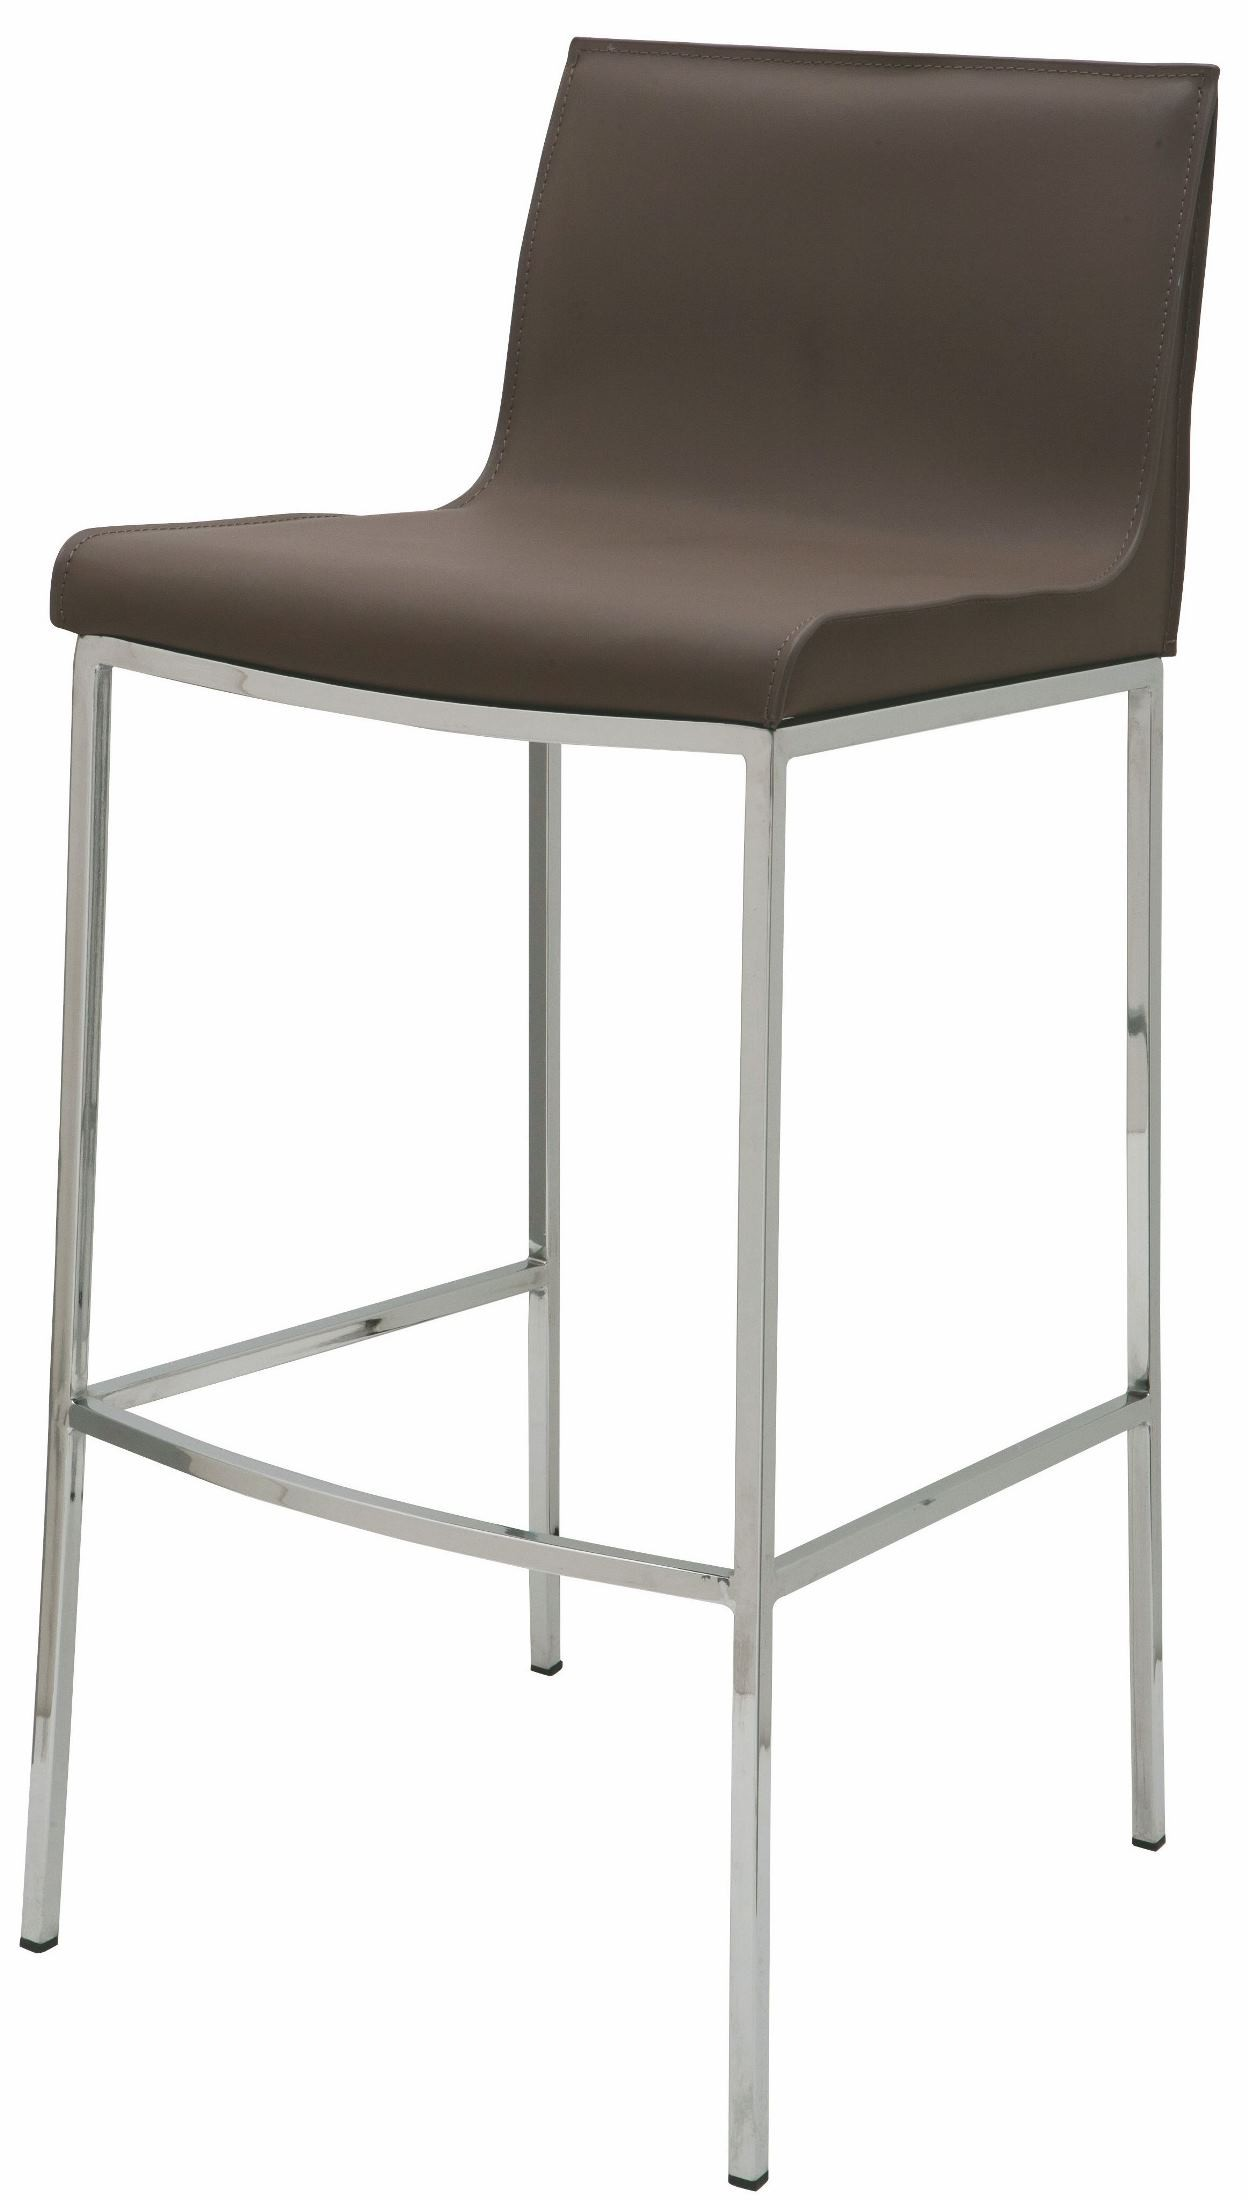 Colter Mink Leather Bar Stool From Nuevo Coleman Furniture